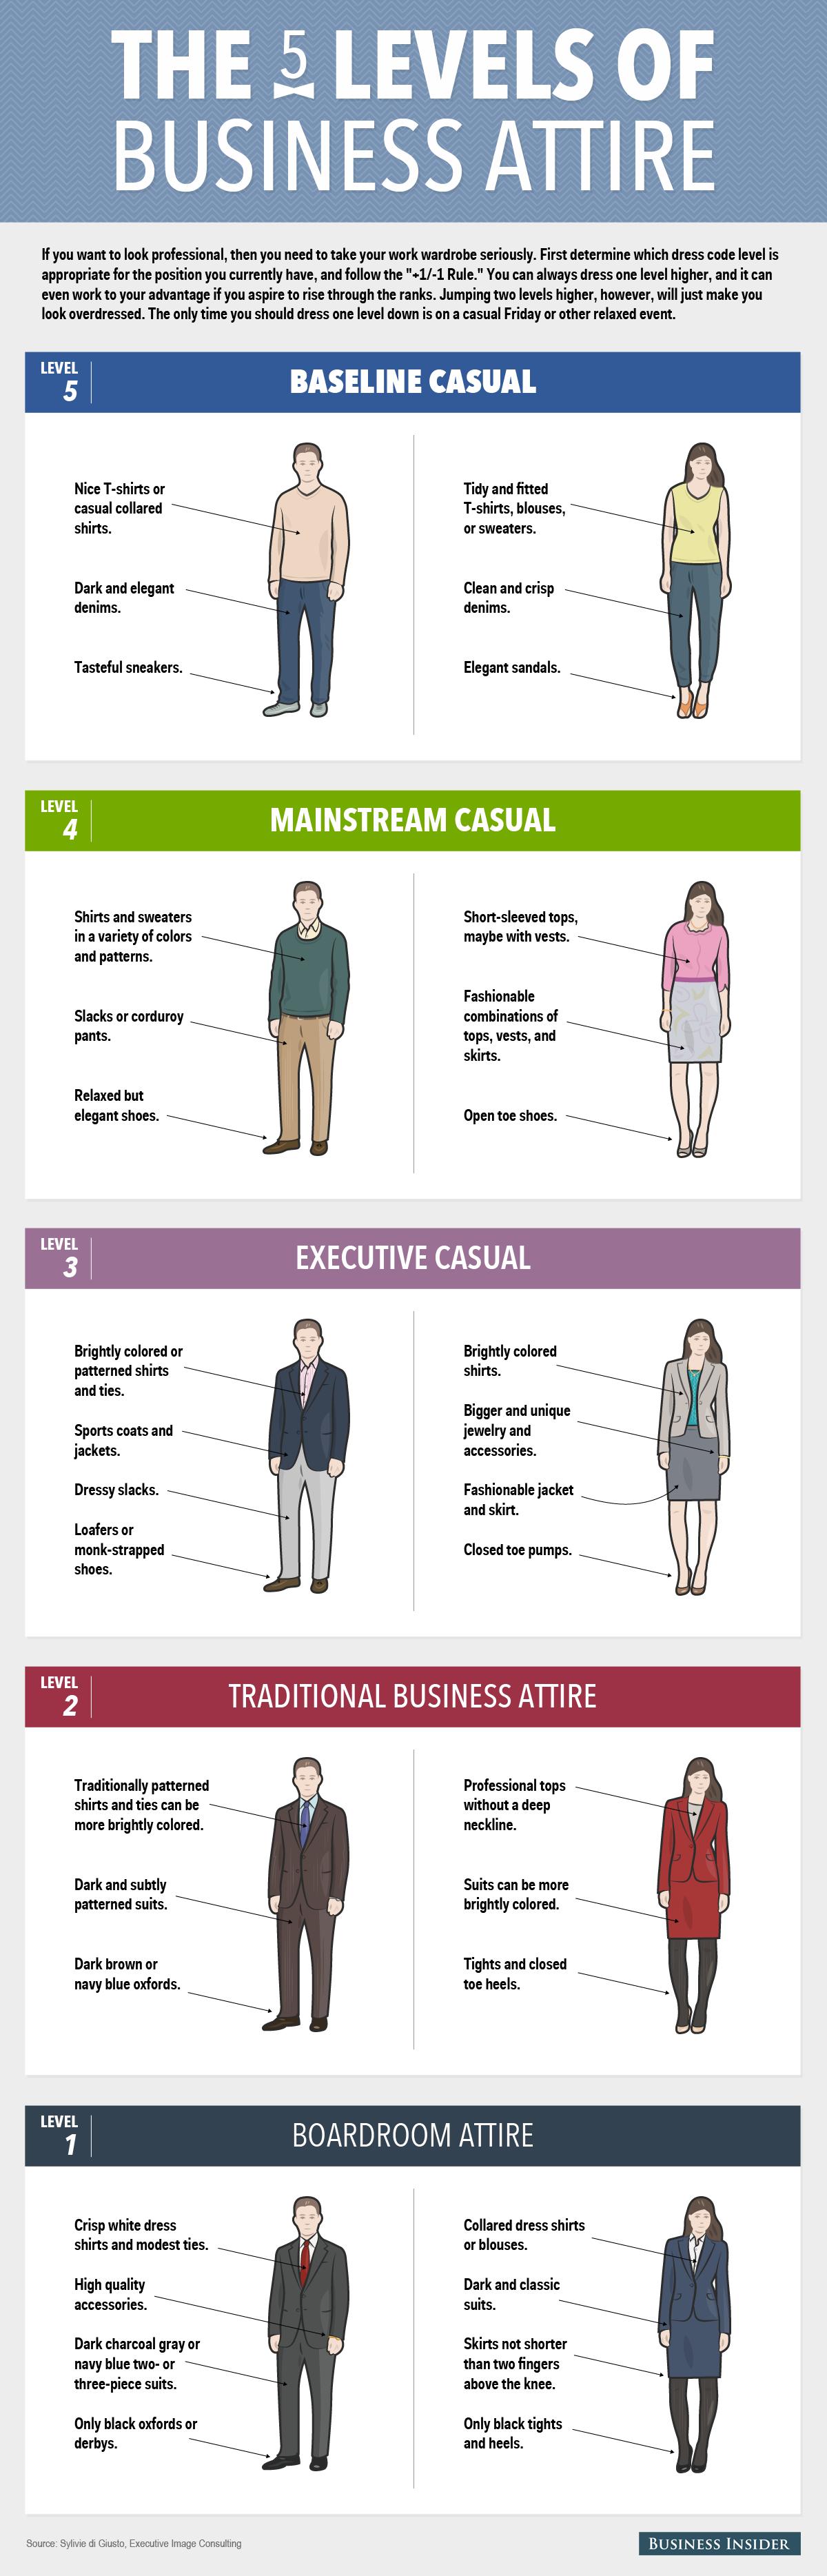 Her Gun Ayni Kiyafetle Ise Gelmek (Infografik) The 5 Levels of Business Attire